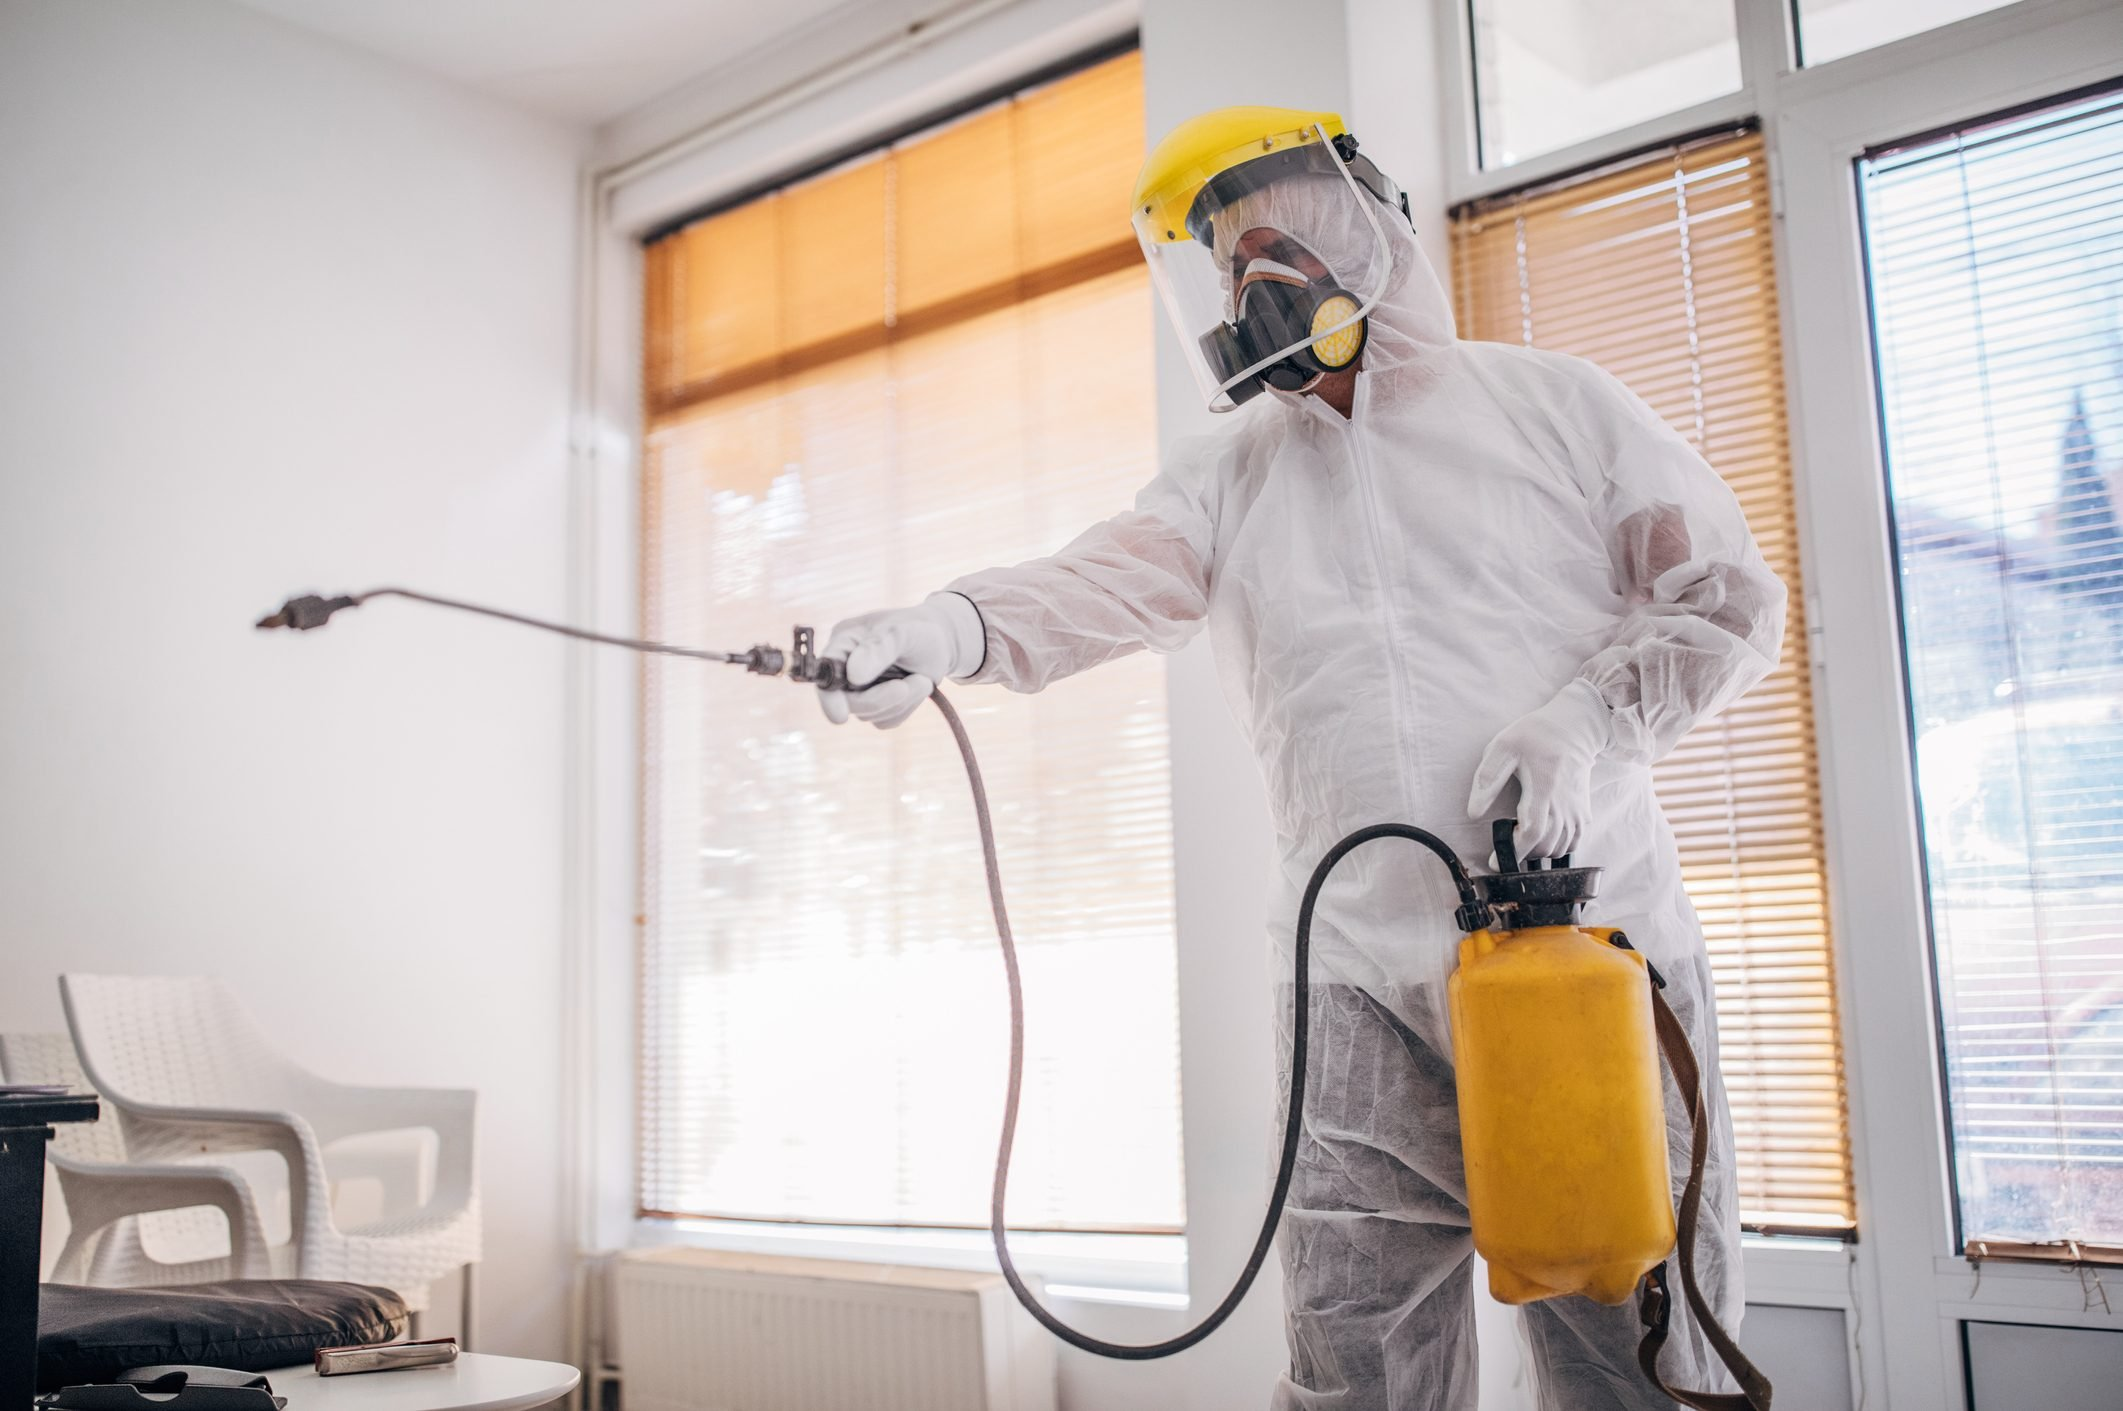 Man in protective suit disinfecting and spraying every room in the building